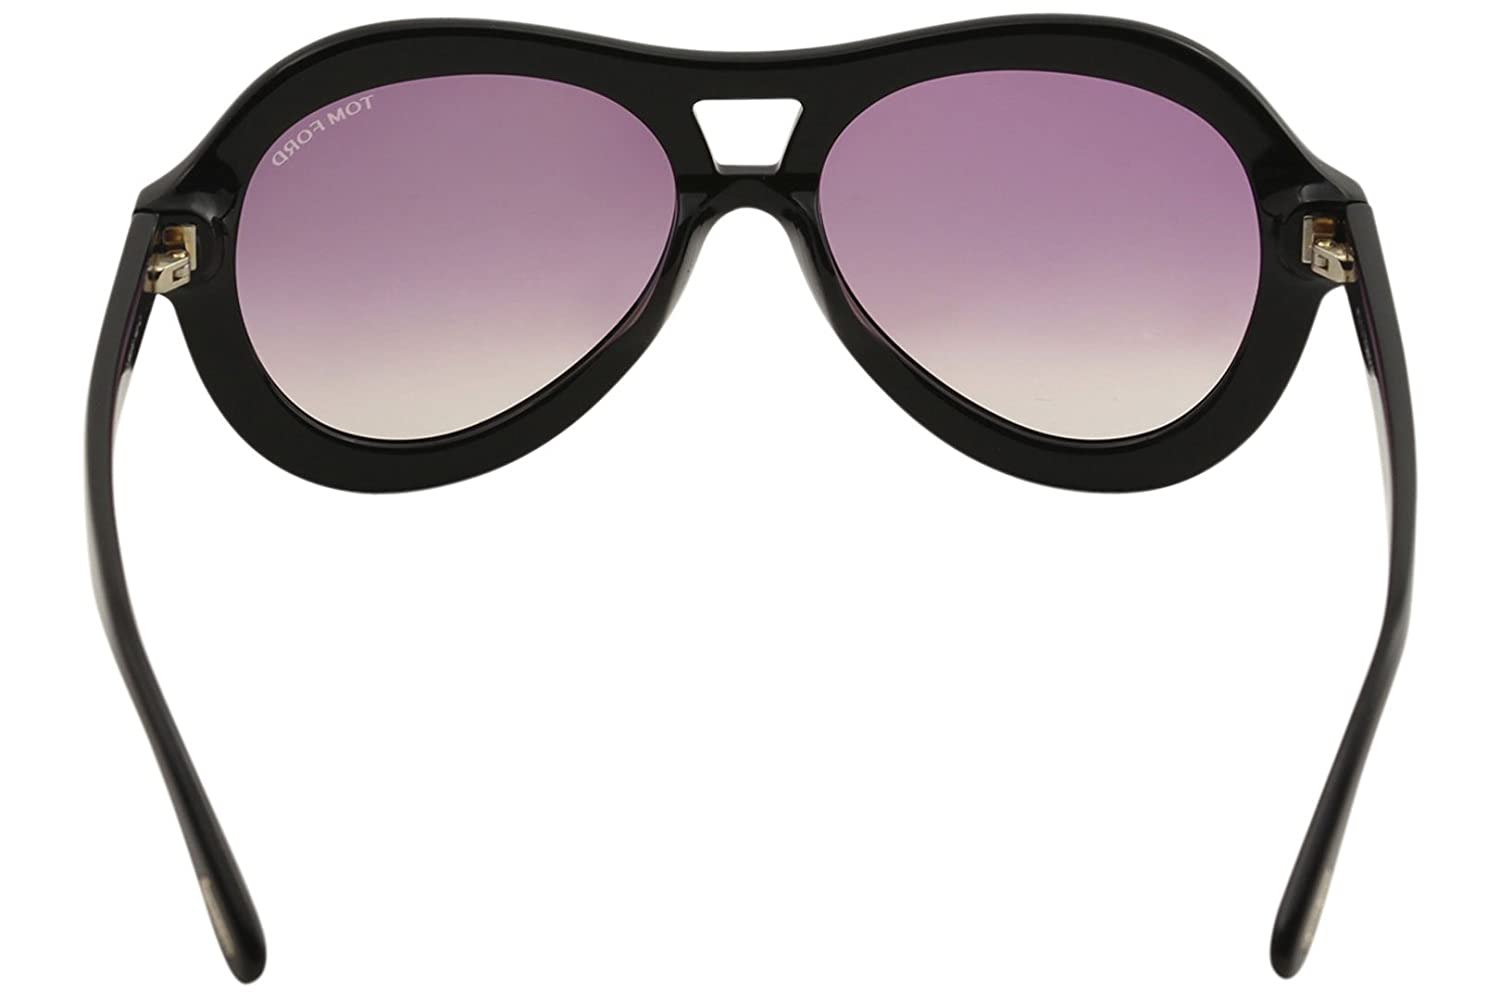 720842d7bbf7 Amazon.com  Tom Ford FT0514 01Z Shiny Black Isla Oval Sunglasses Lens  Category 2 Size 56mm  Tom Ford  Clothing